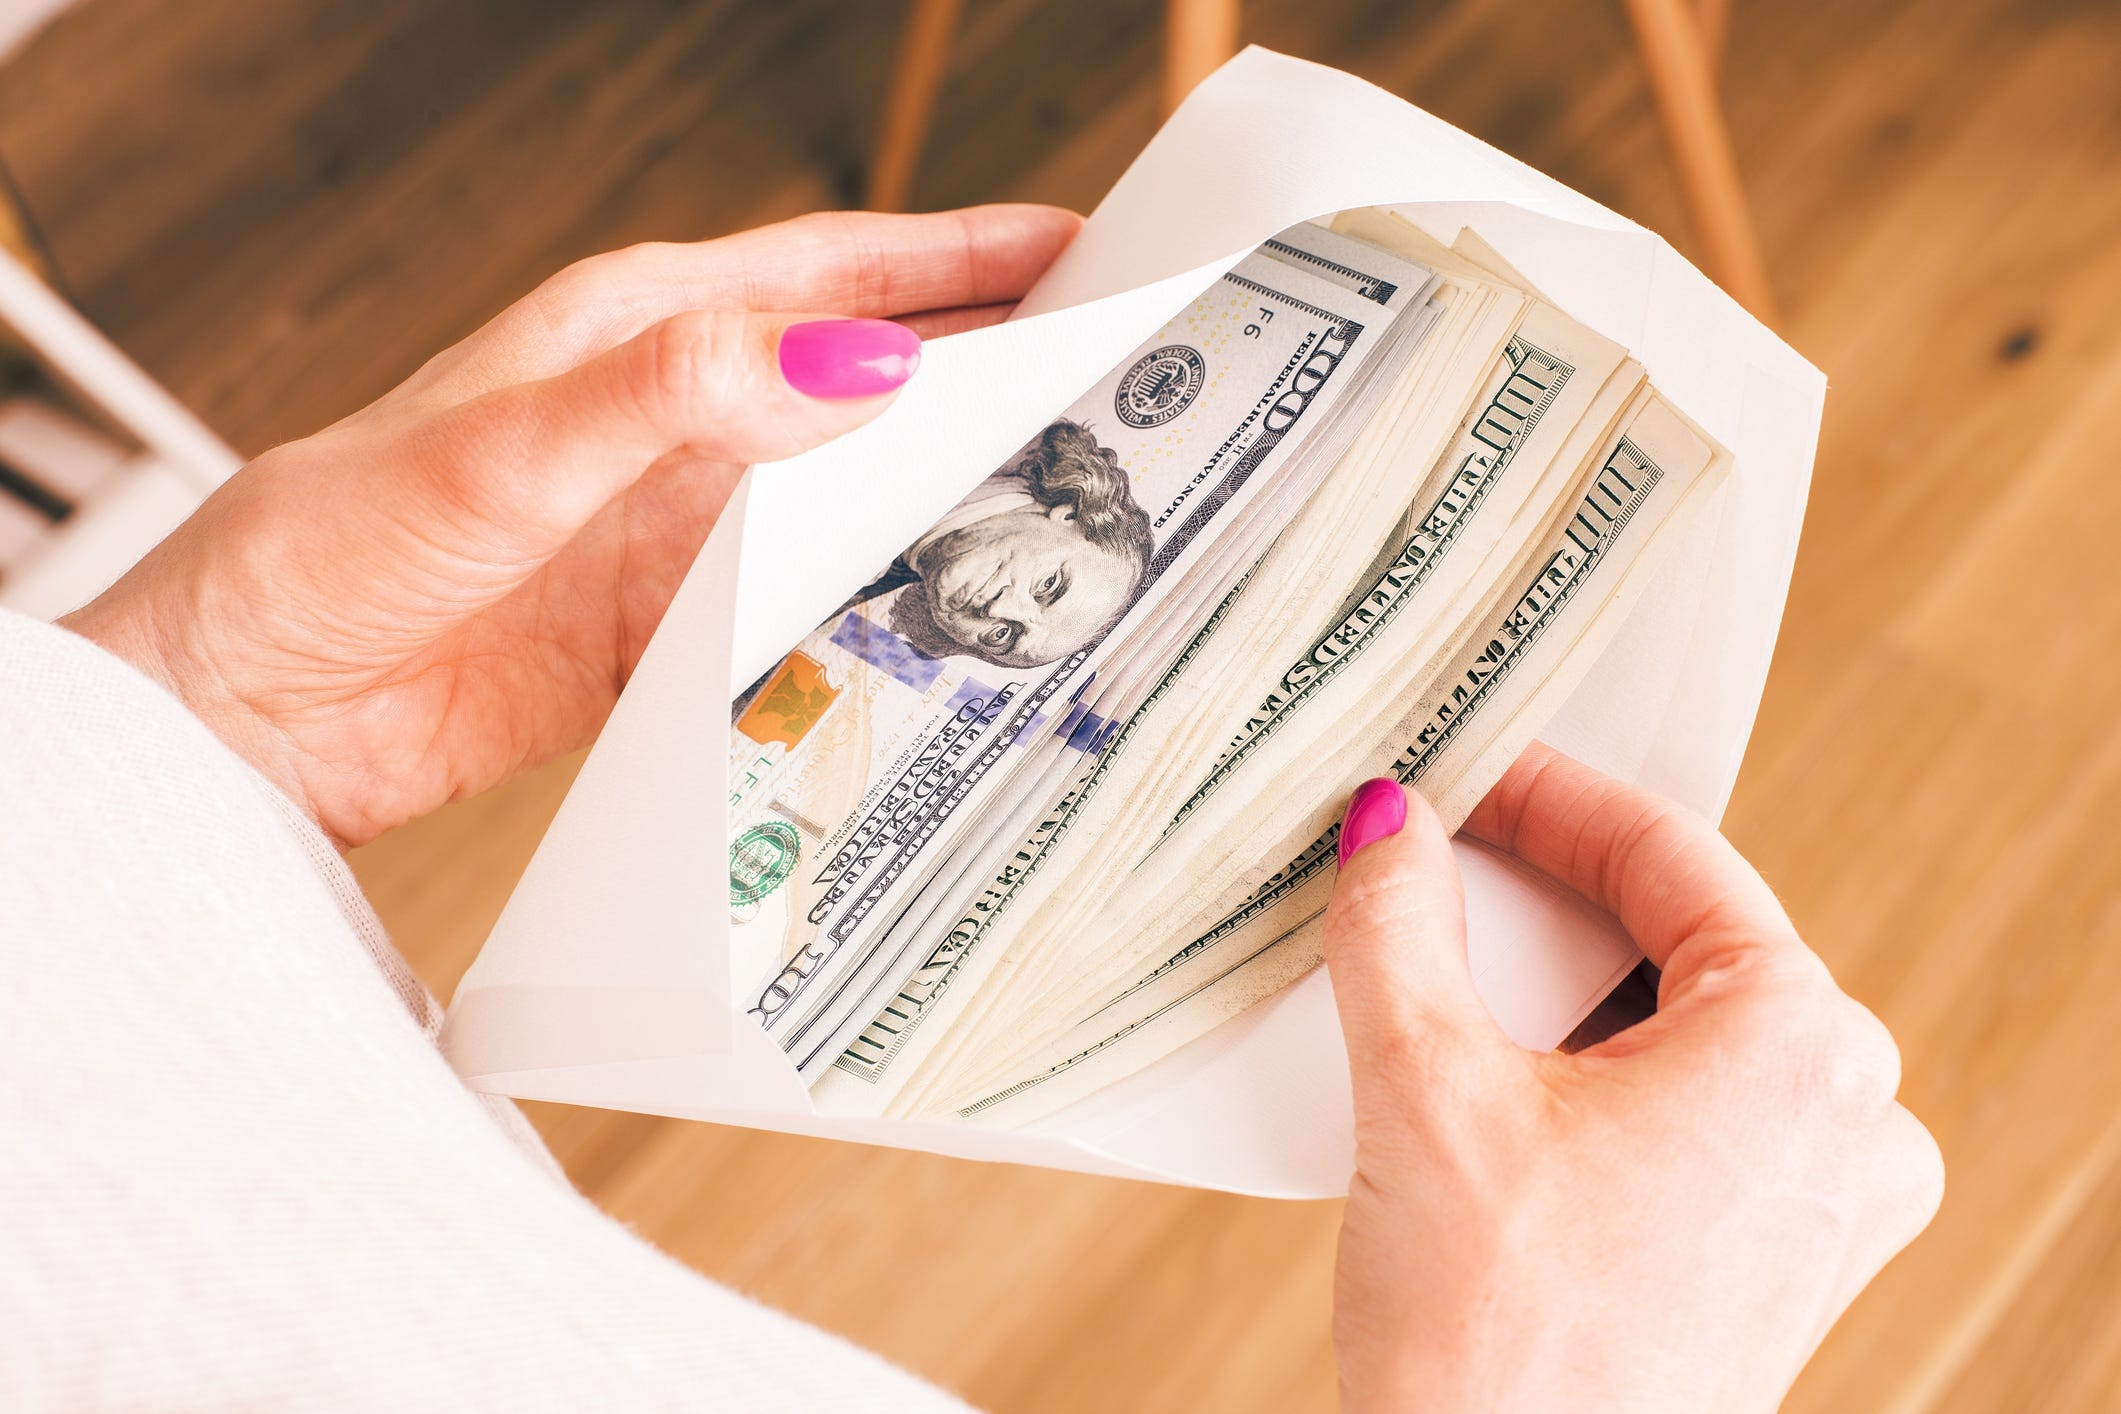 Too many women defer to their husbands on finances